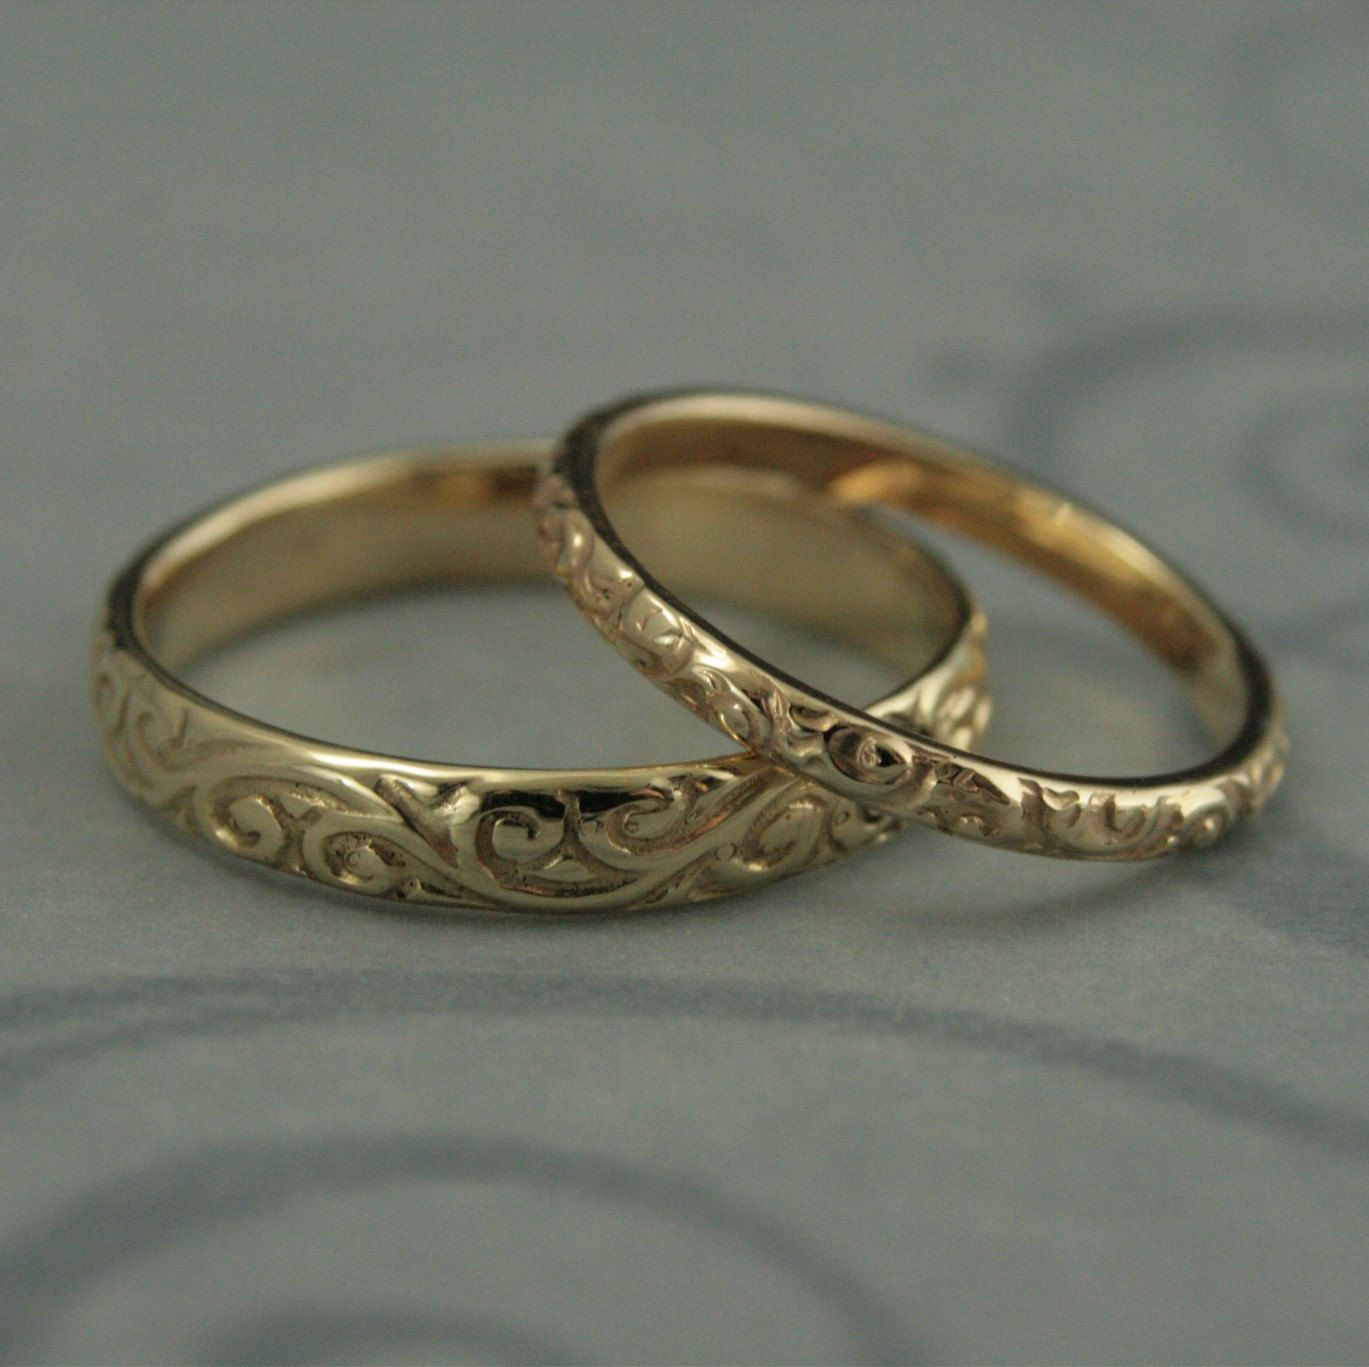 Patterned Wedding Band Set-Vintage Style Wedding Rings-His and